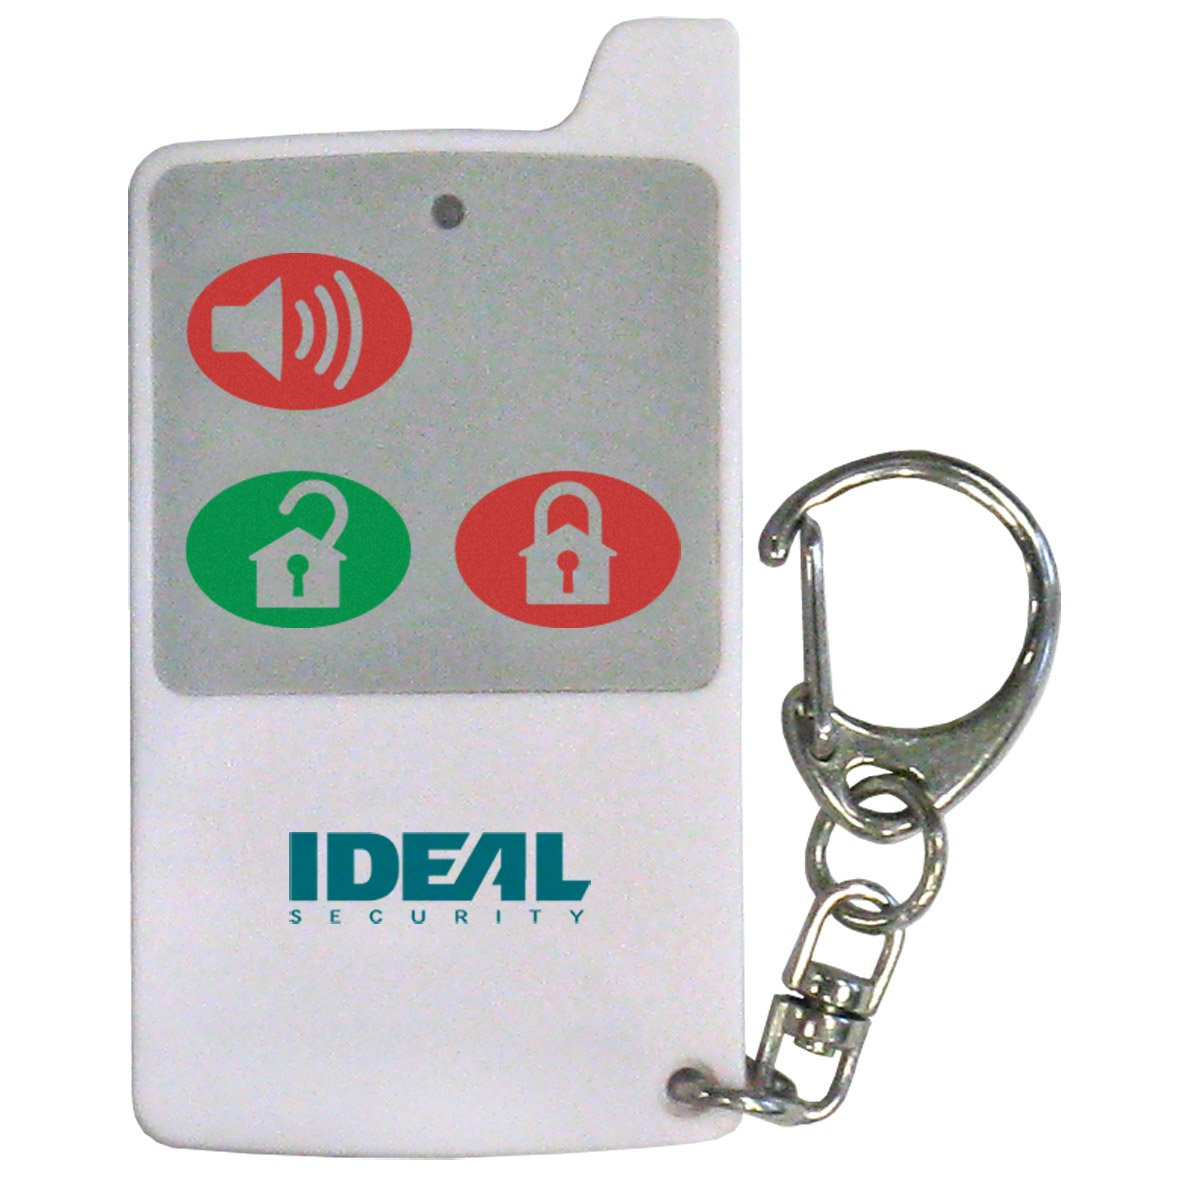 Ideal Security SK6-Series Remote Controls Arm, Disarm, and Panic Buttons, Work with all SK6 Alarms